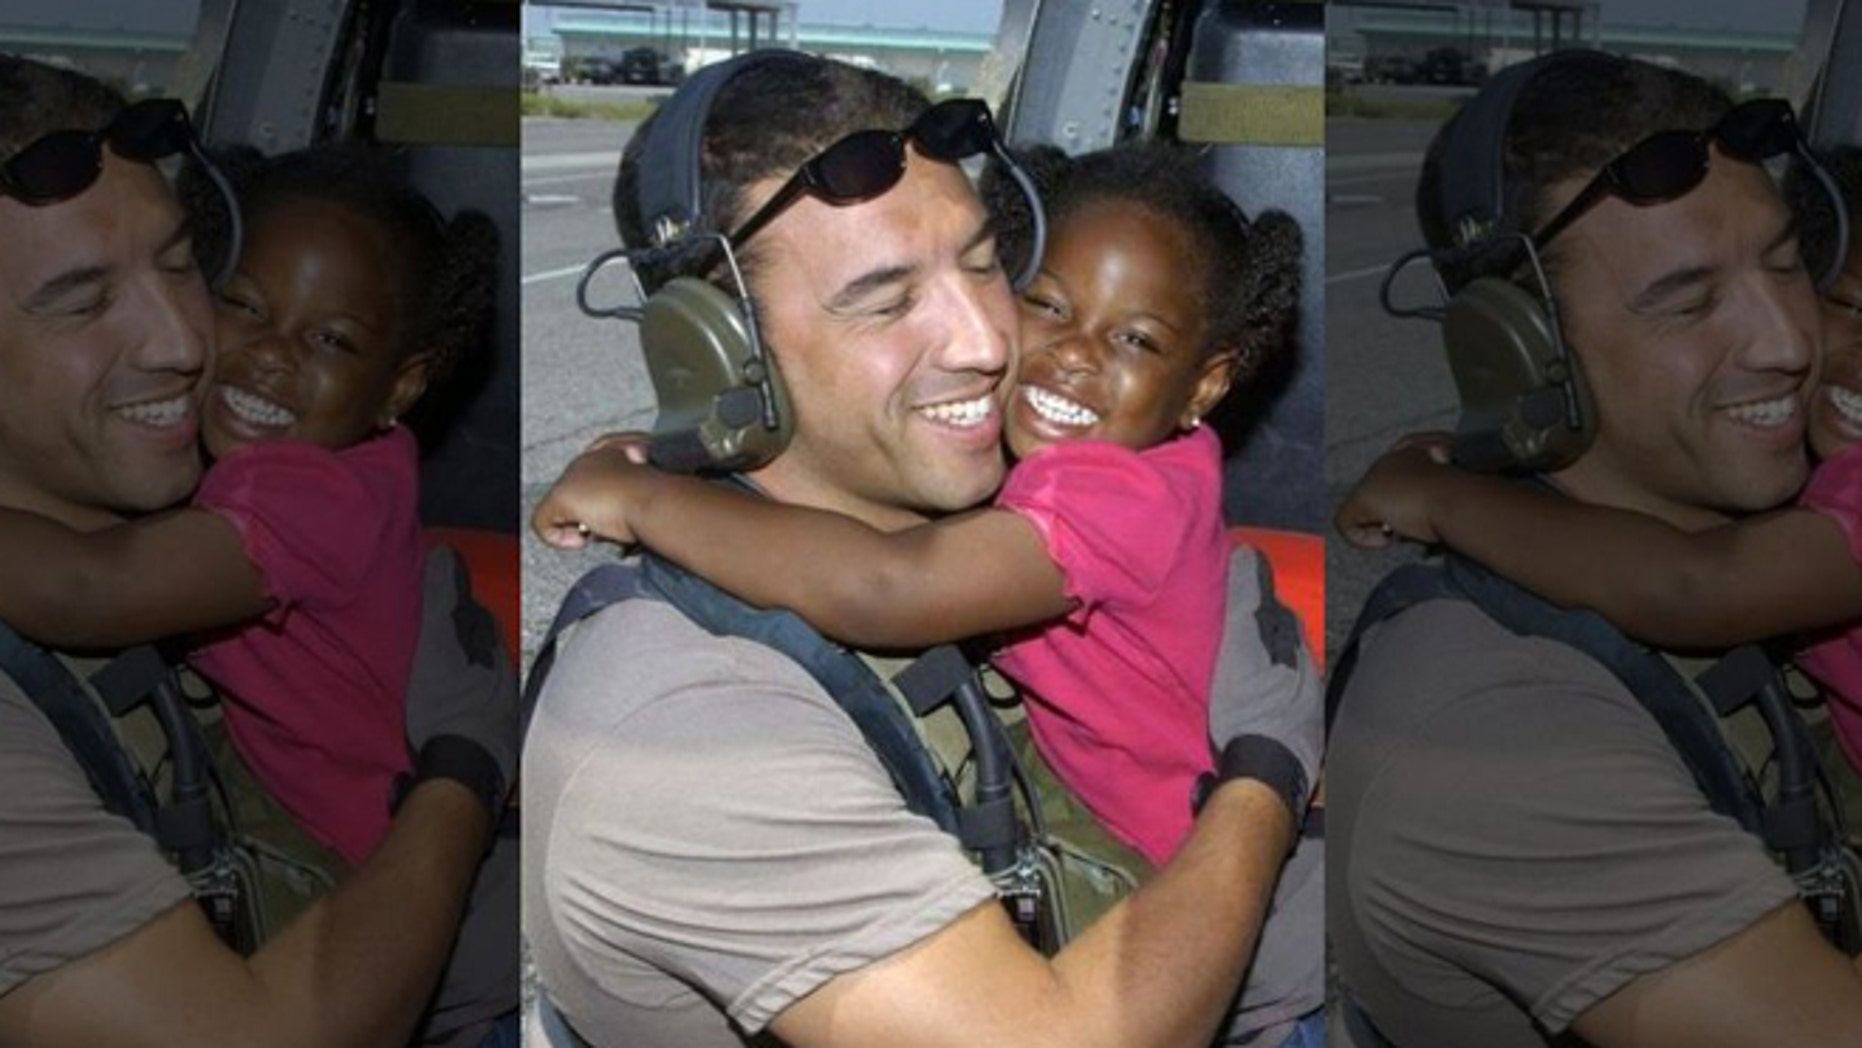 Air Force Reserve Master Sgt. Mike Maroney hugs 3-year-old he rescued in aftermath of Hurricane Katrina in 2005. (U.S. Air Force)